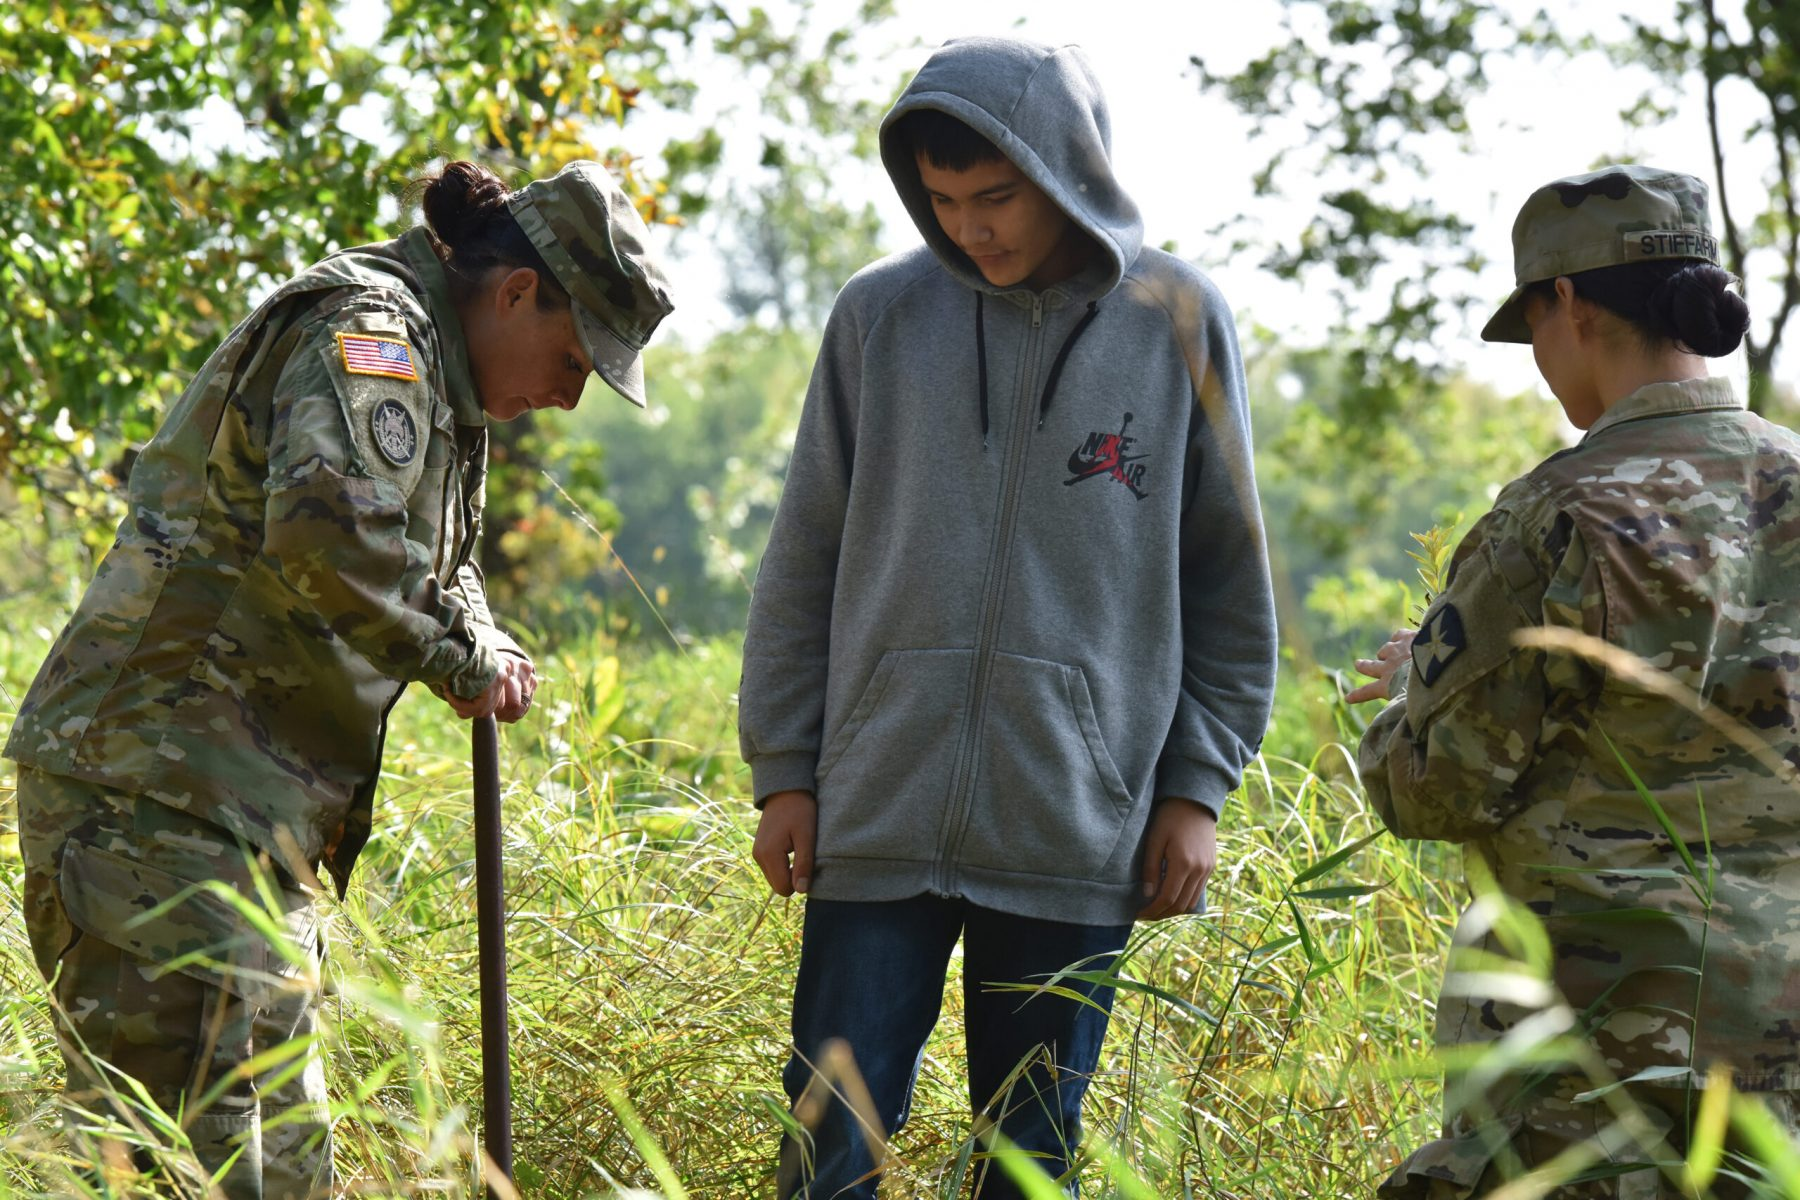 Minnesota National Guard Sgt. First Class Jessica Stiffarm (left) and Staff Sgt. Jennifer Stiffarm (right) work with a Mille Lacs Band of Ojibwe student from Onamia High School Sept. 20, 2019 to plant native plants on Camp Ripley during a 'Planting for the Future' cultural exchange event.